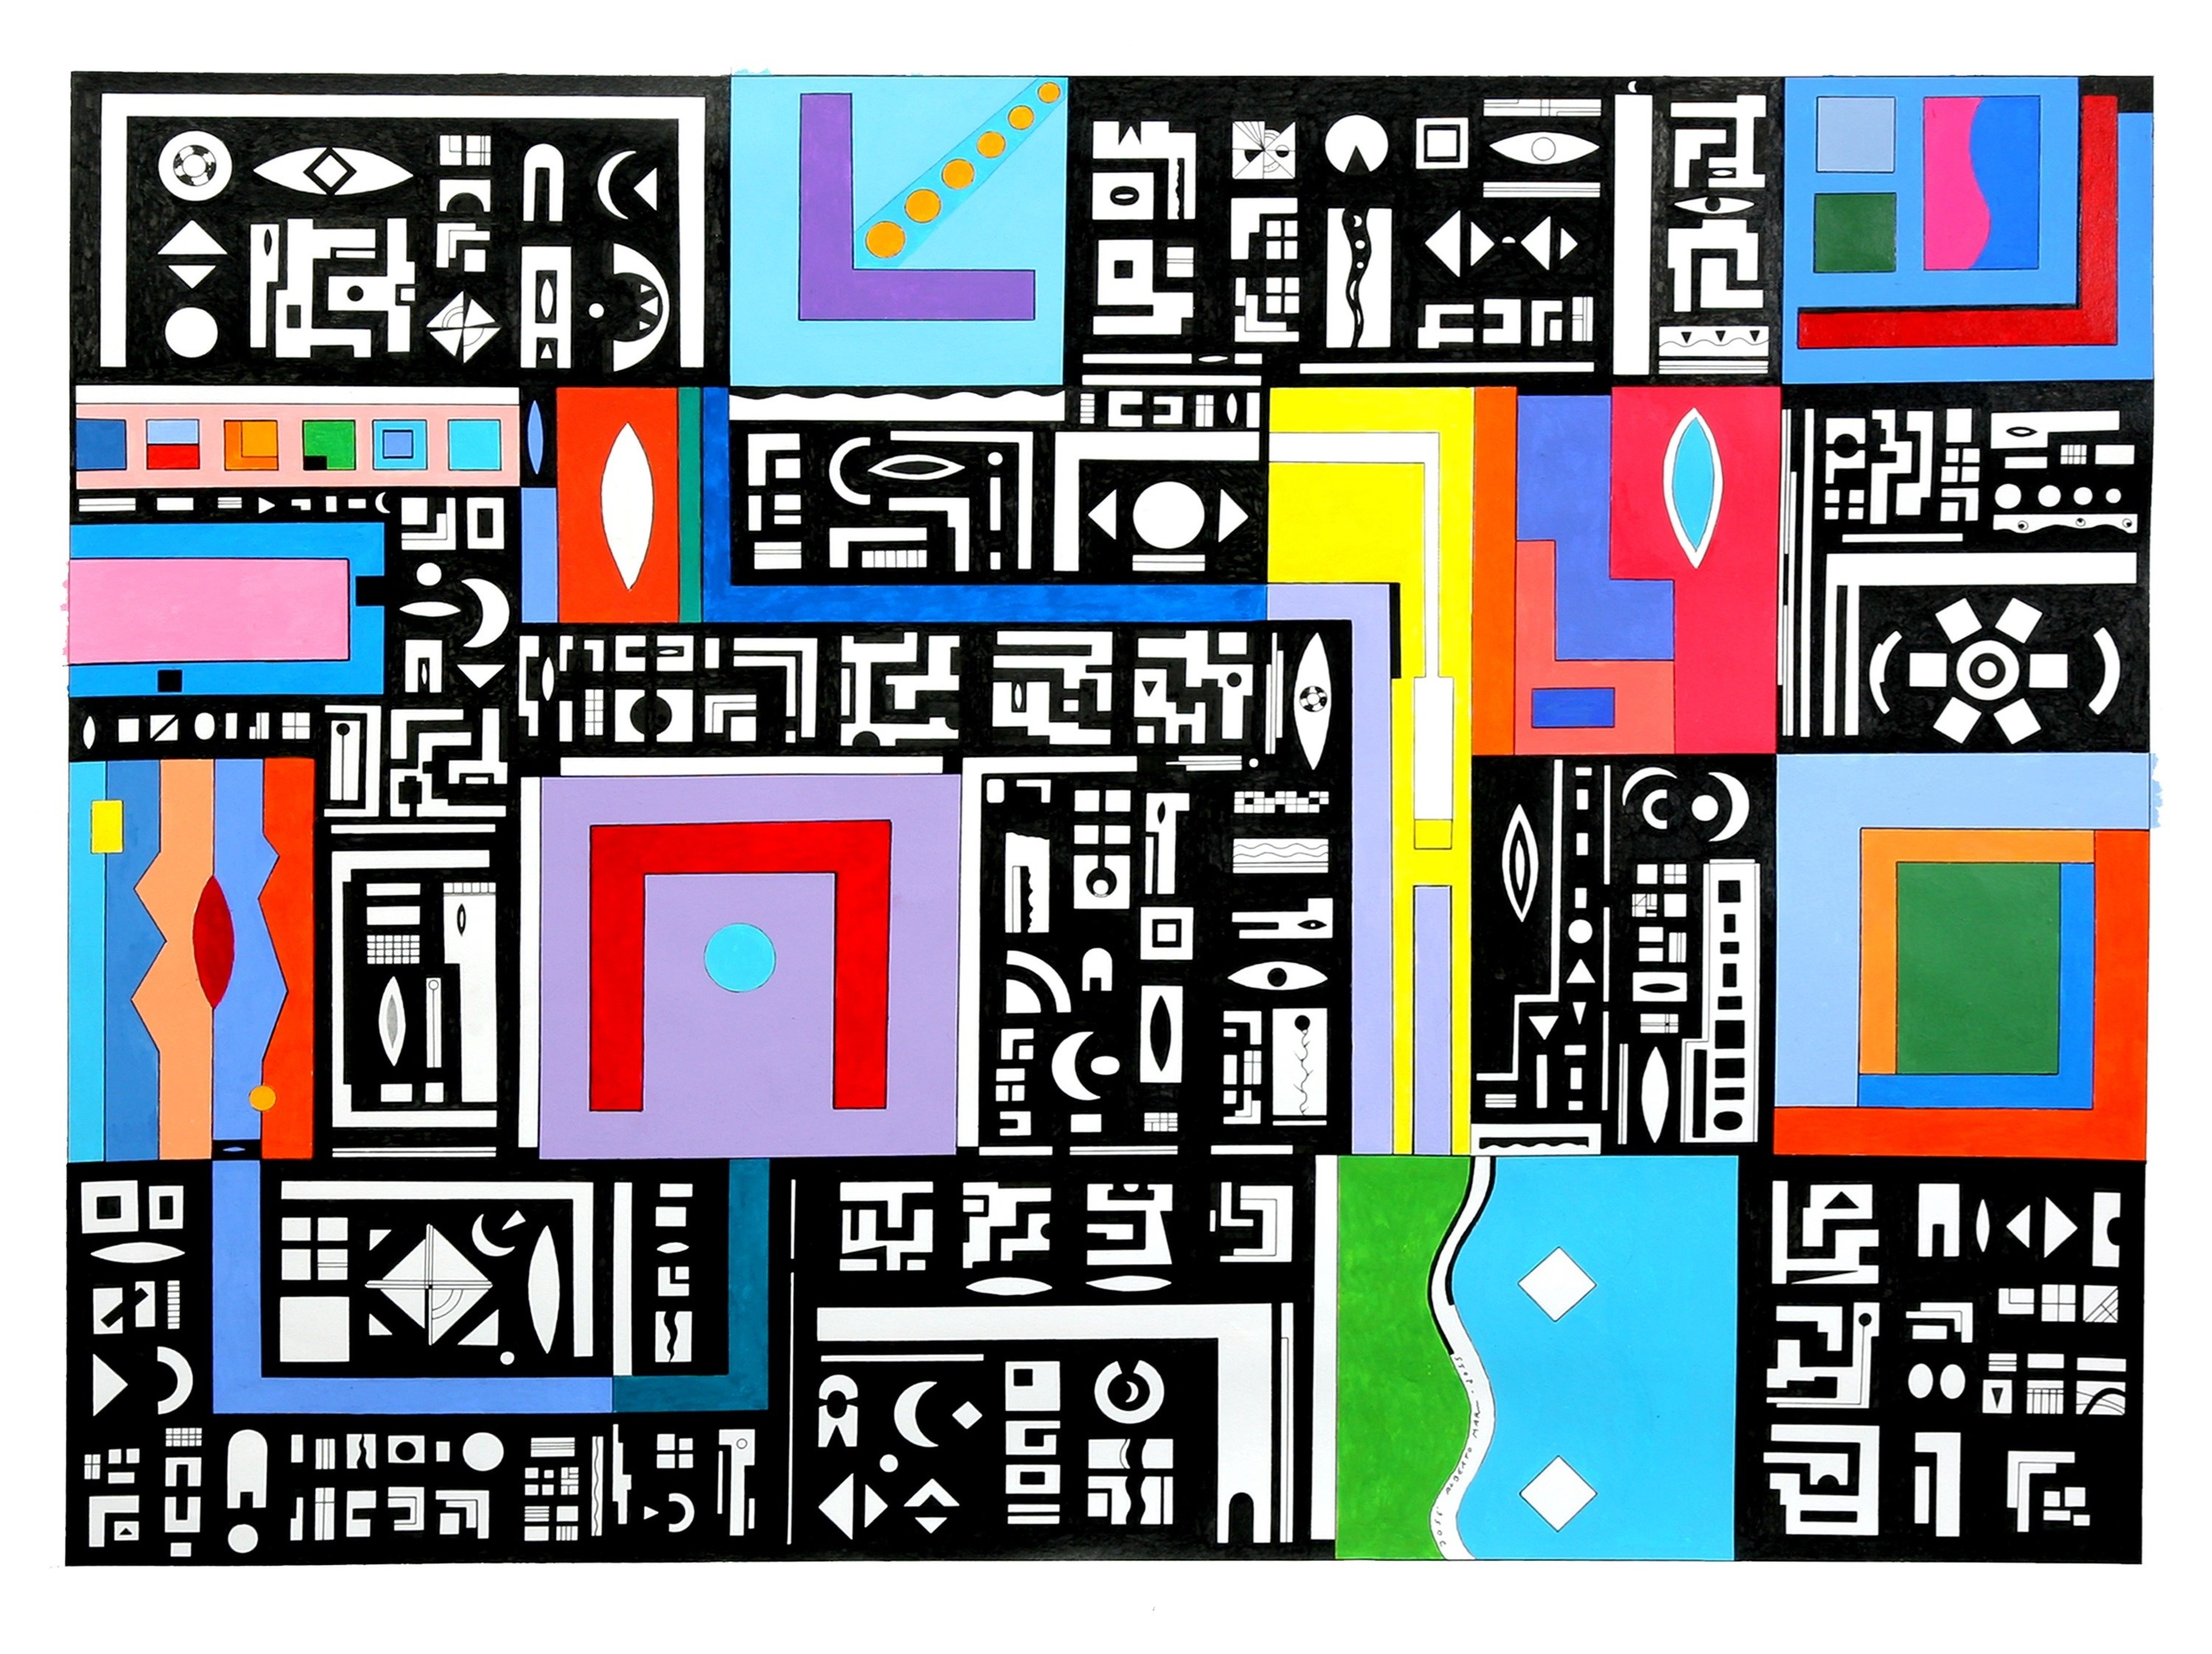 Novos Sinais. New Signs. , original Geometric Acrylic Painting by José Alberto Mar